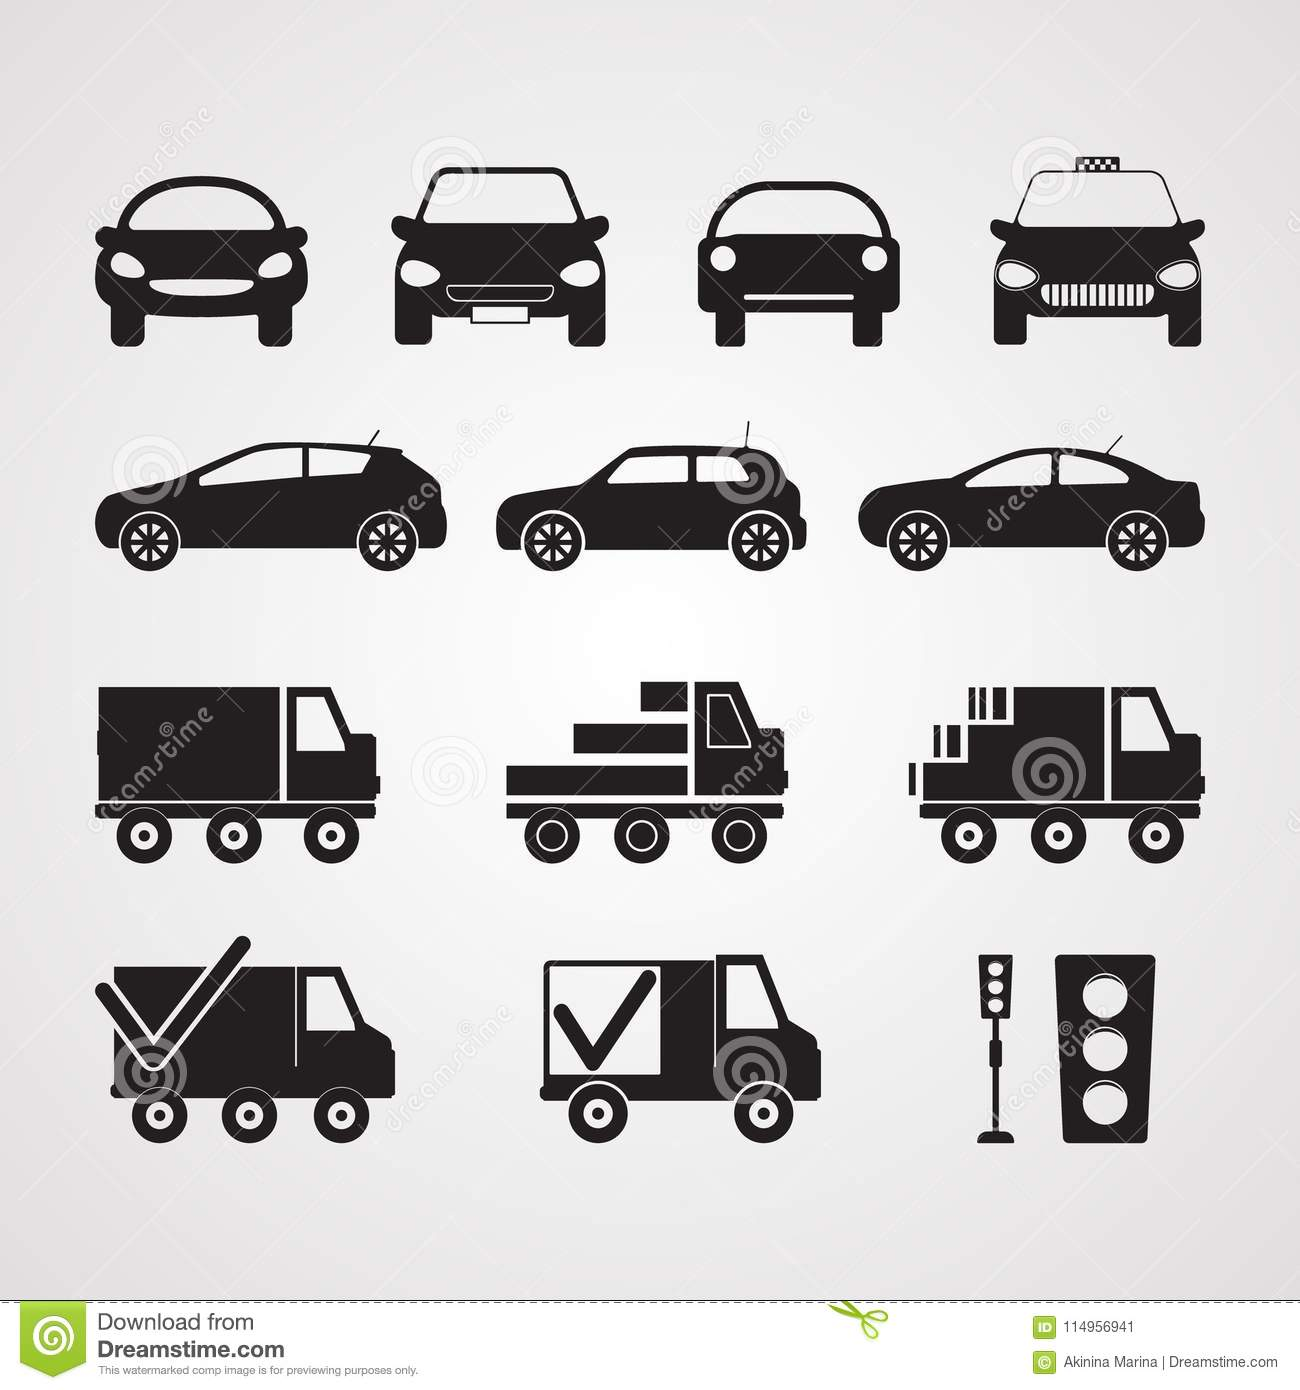 Carved silhouette flat icons, vector. Set of different cars in p